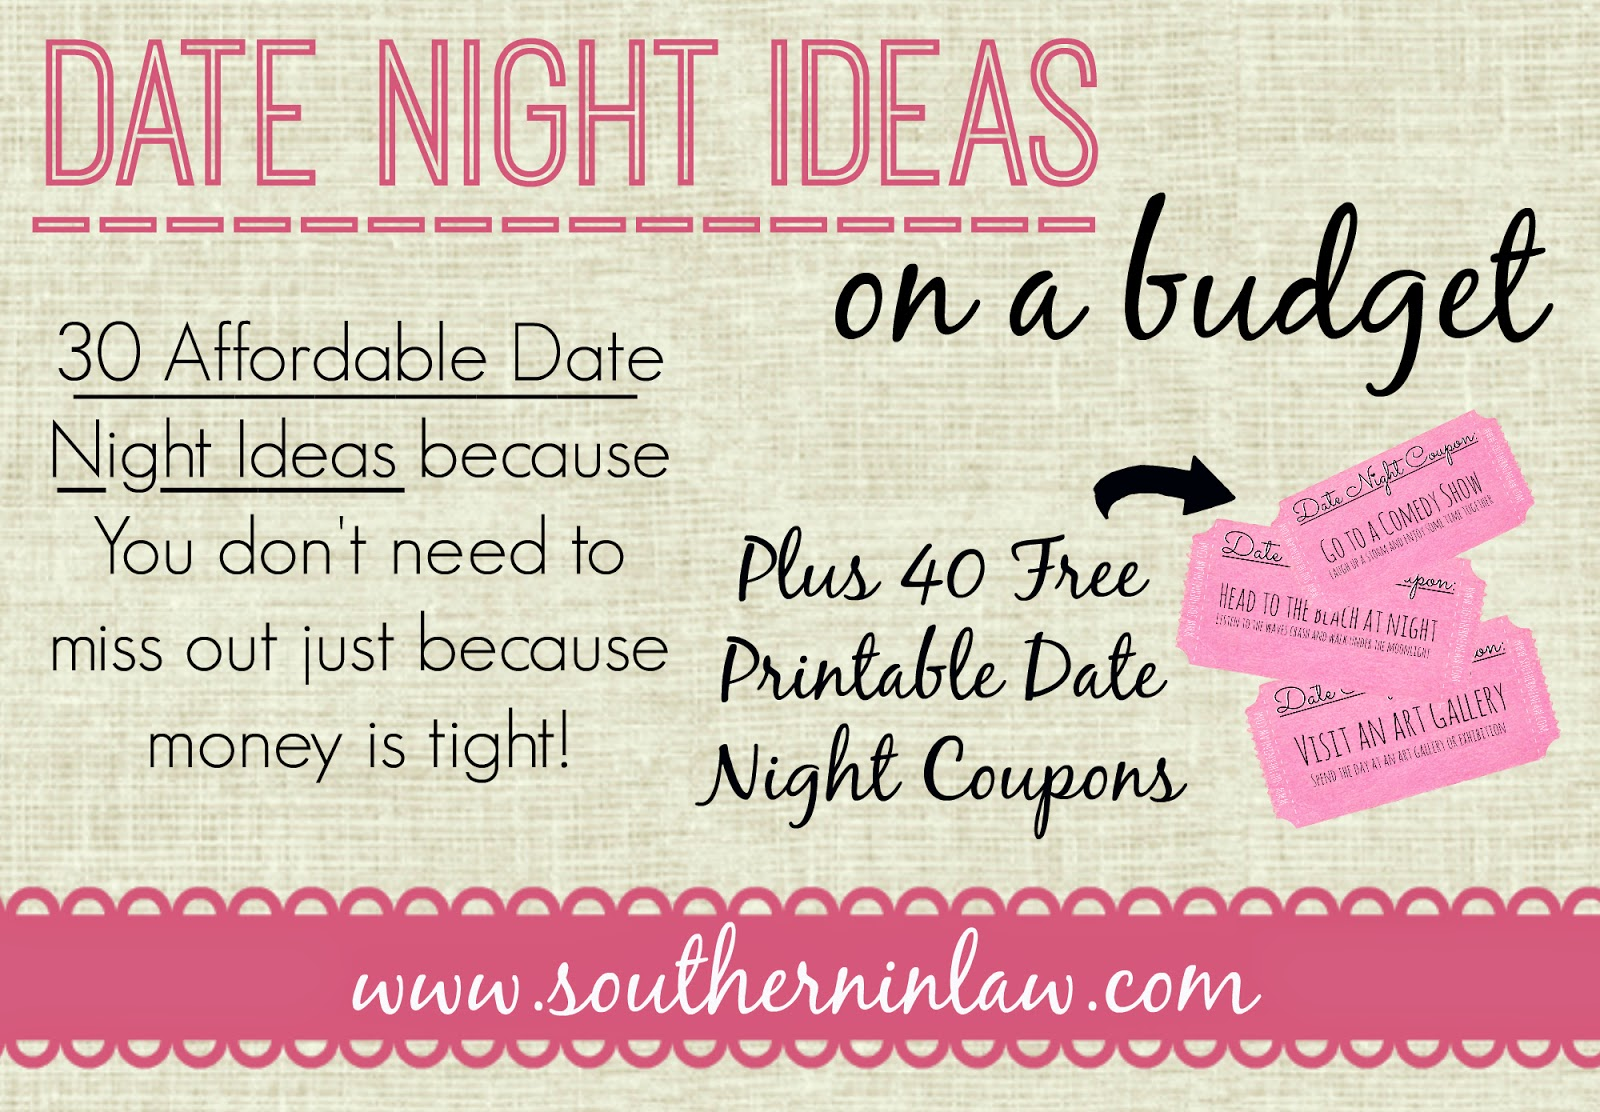 Cheap Date Night Ideas - Date Night Coupons - Date Ideas on a Budget